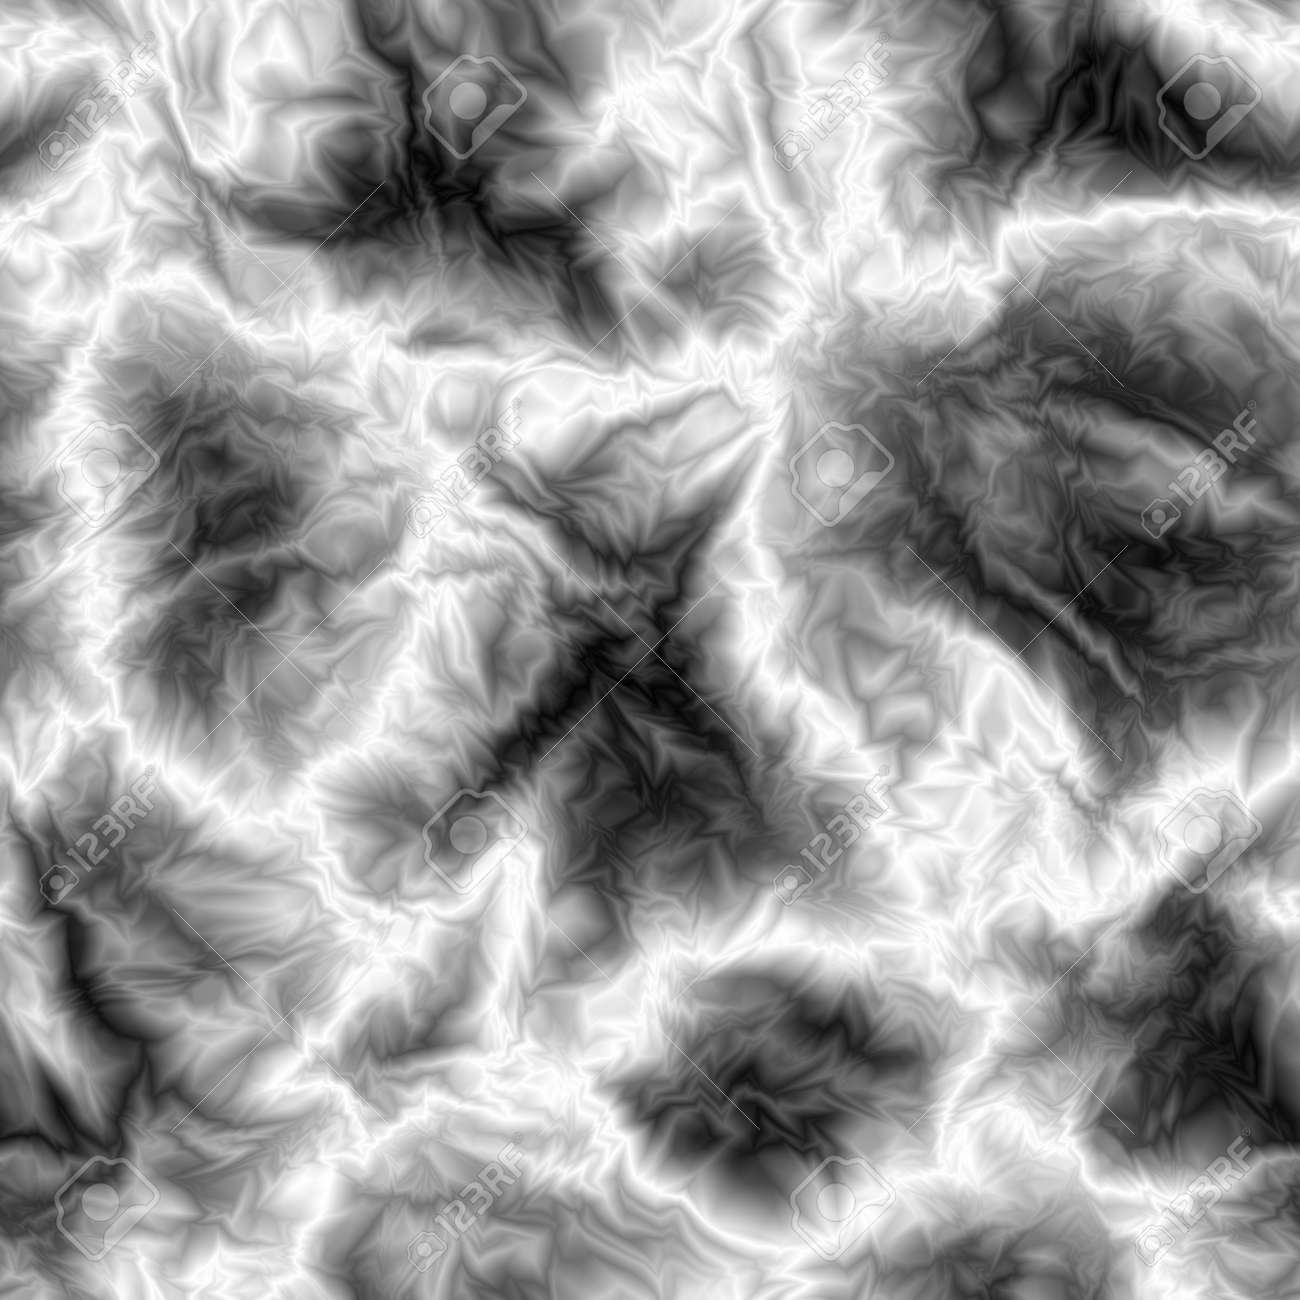 Tiled bump-texture of foil. For 3D graphics. Stock Photo - 12221016